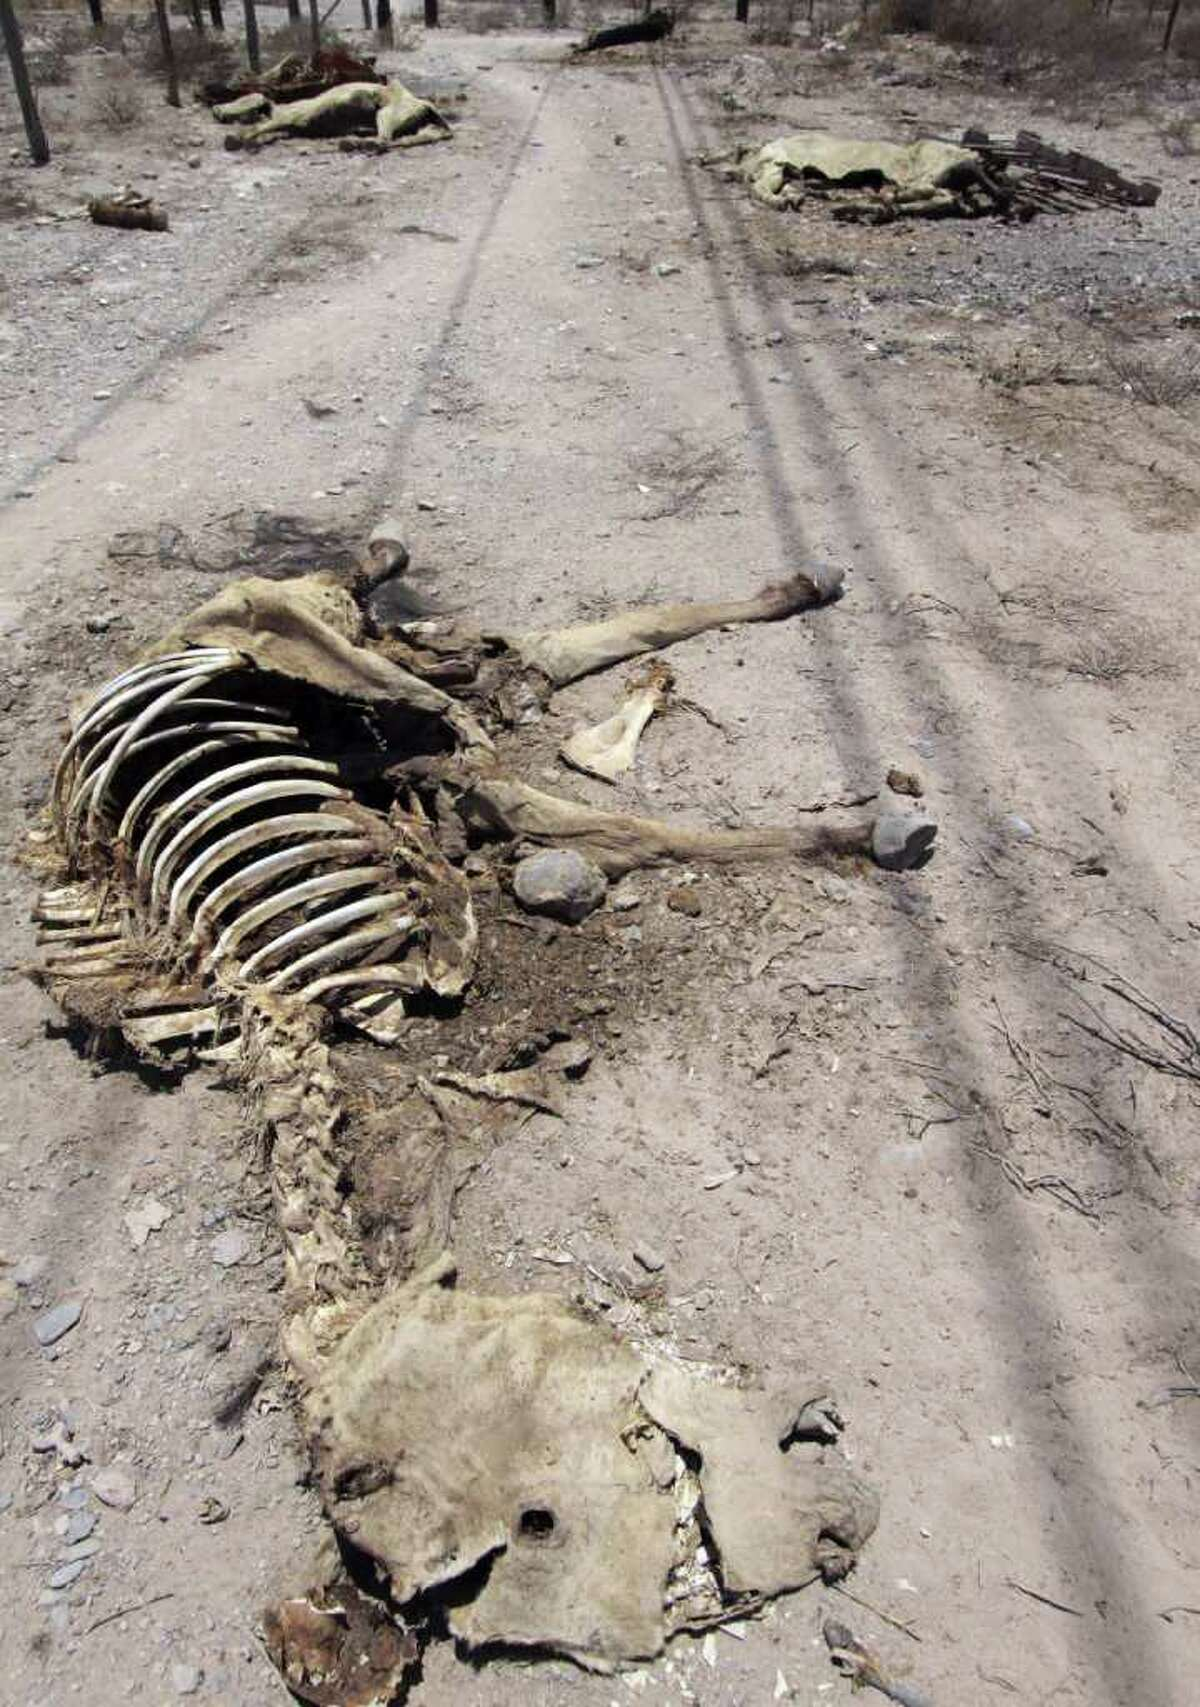 The remains of dead animals lay on a rural road on the outskirts of Torreon in northern Mexico. Officials say the situation likely will worsen.